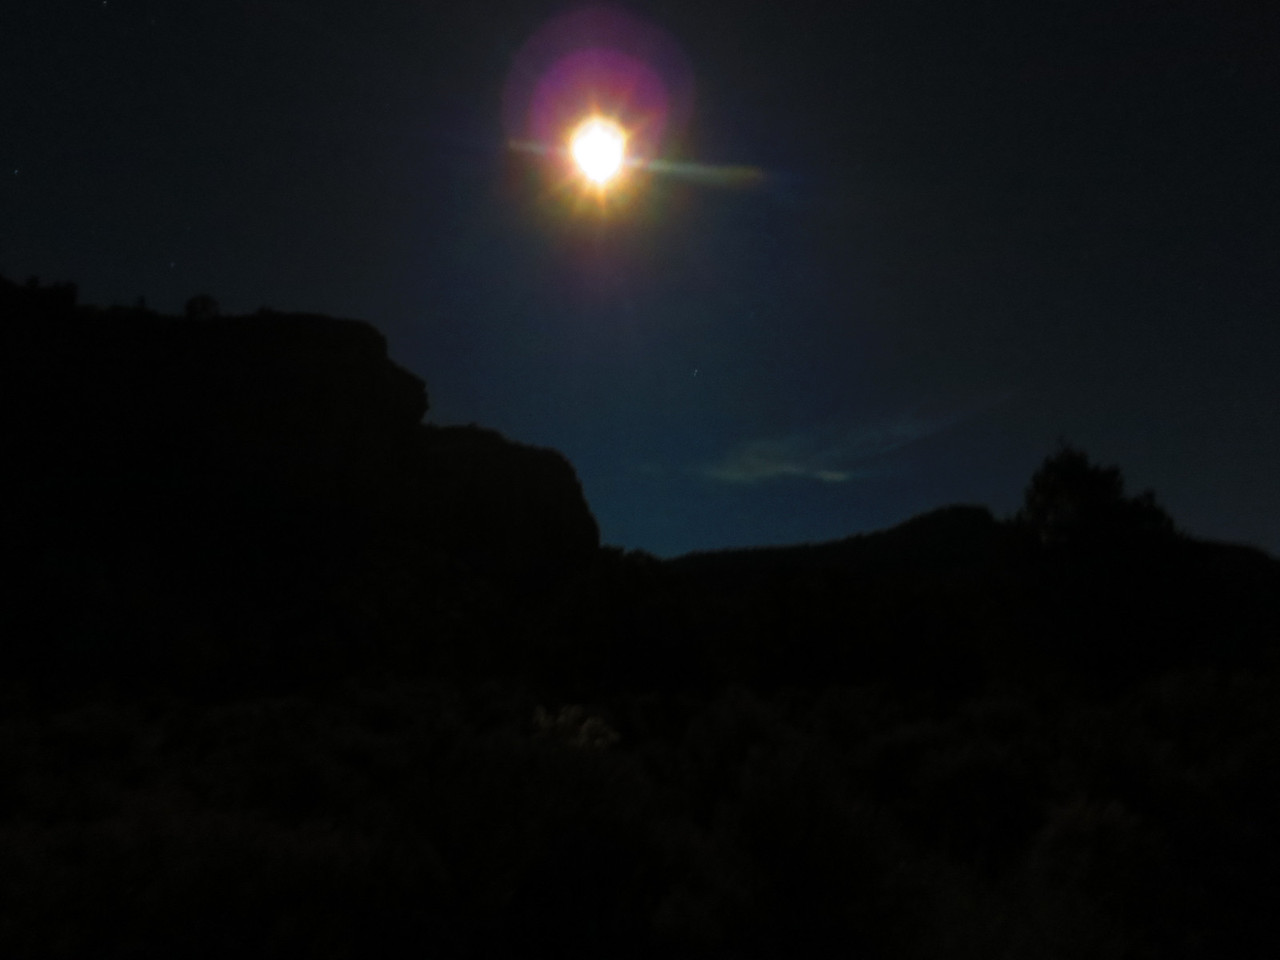 Taking a quiet stroll Monday night, joined by a bright moon.